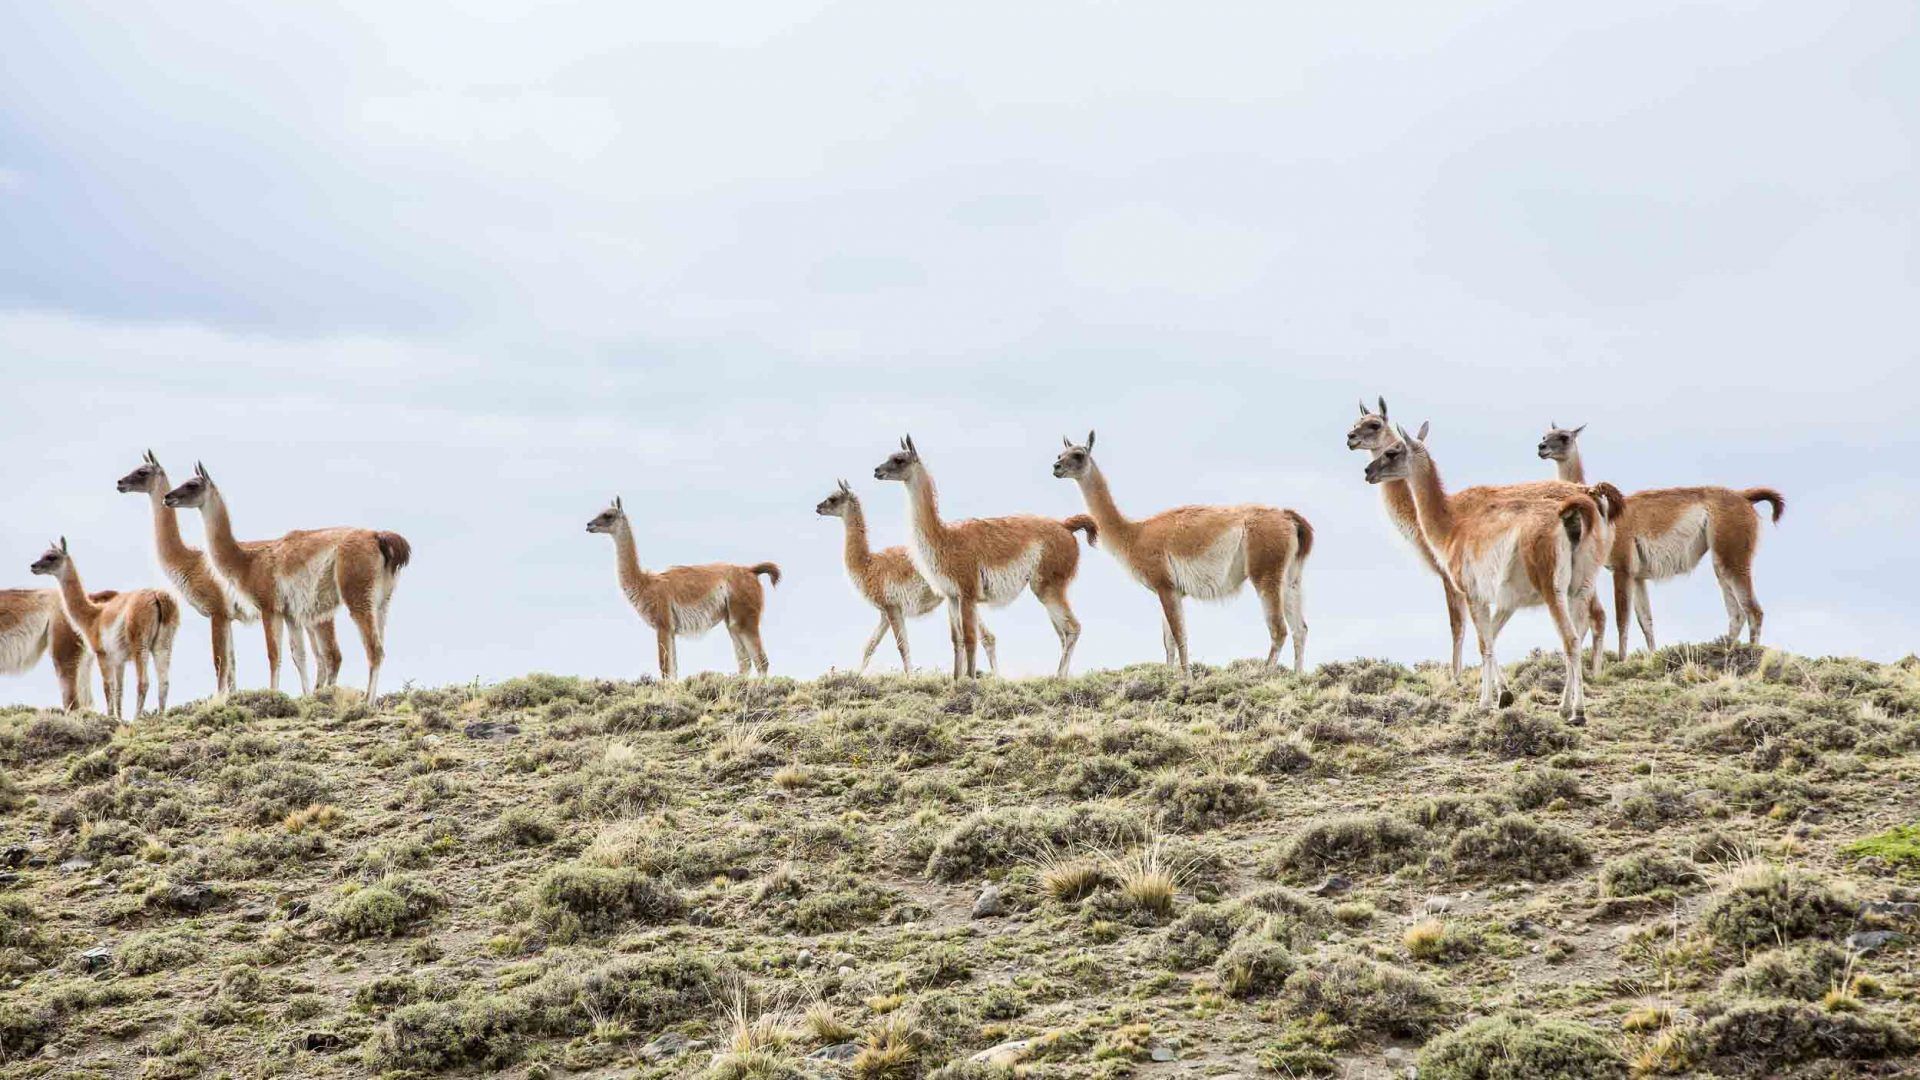 A herd of guanaco, one of the two wild South American camelids, in Torres del Paine, Chile.